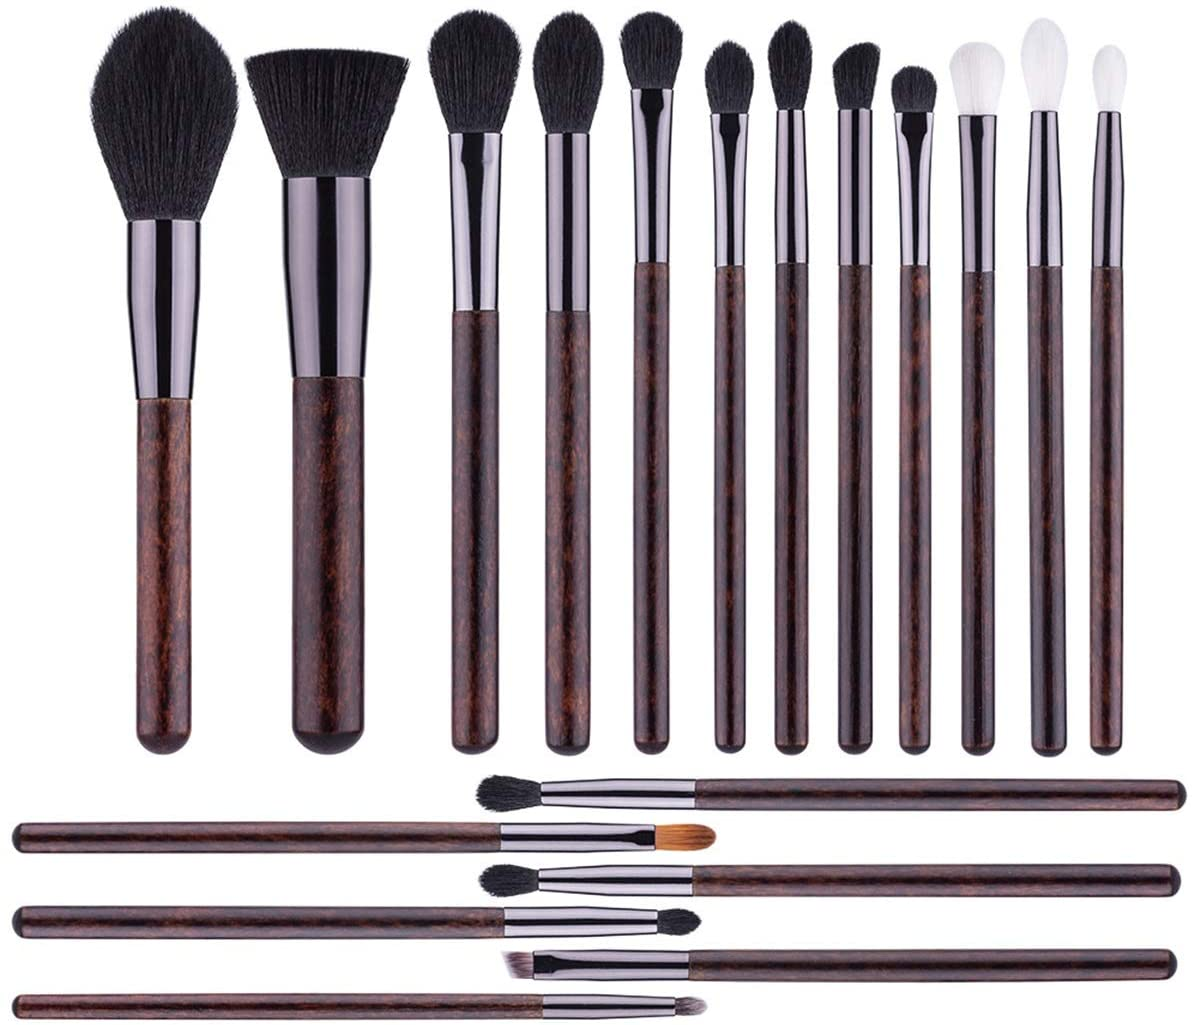 zZZ ZX 18 Pcs Imitation Pear Flower Wooden Handle Makeup Brush Blush Foundation Eye Shadow Brush Professional Beauty Tools Makeup Pen Set Beautiful